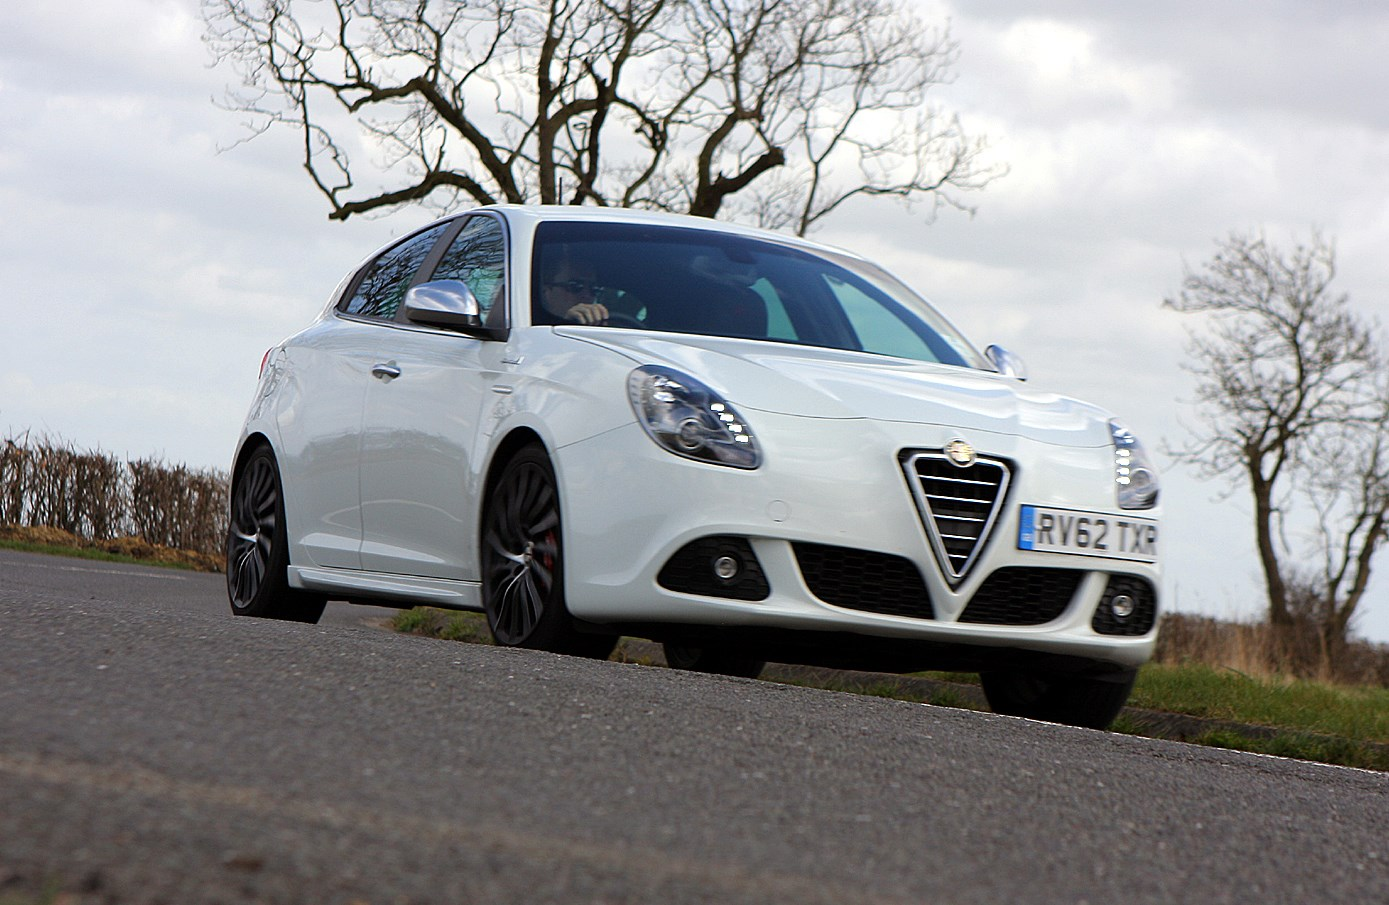 Alfa Romeo Giulietta Hatchback 2010 Driving Performance Parkers Springs View All Images Of The